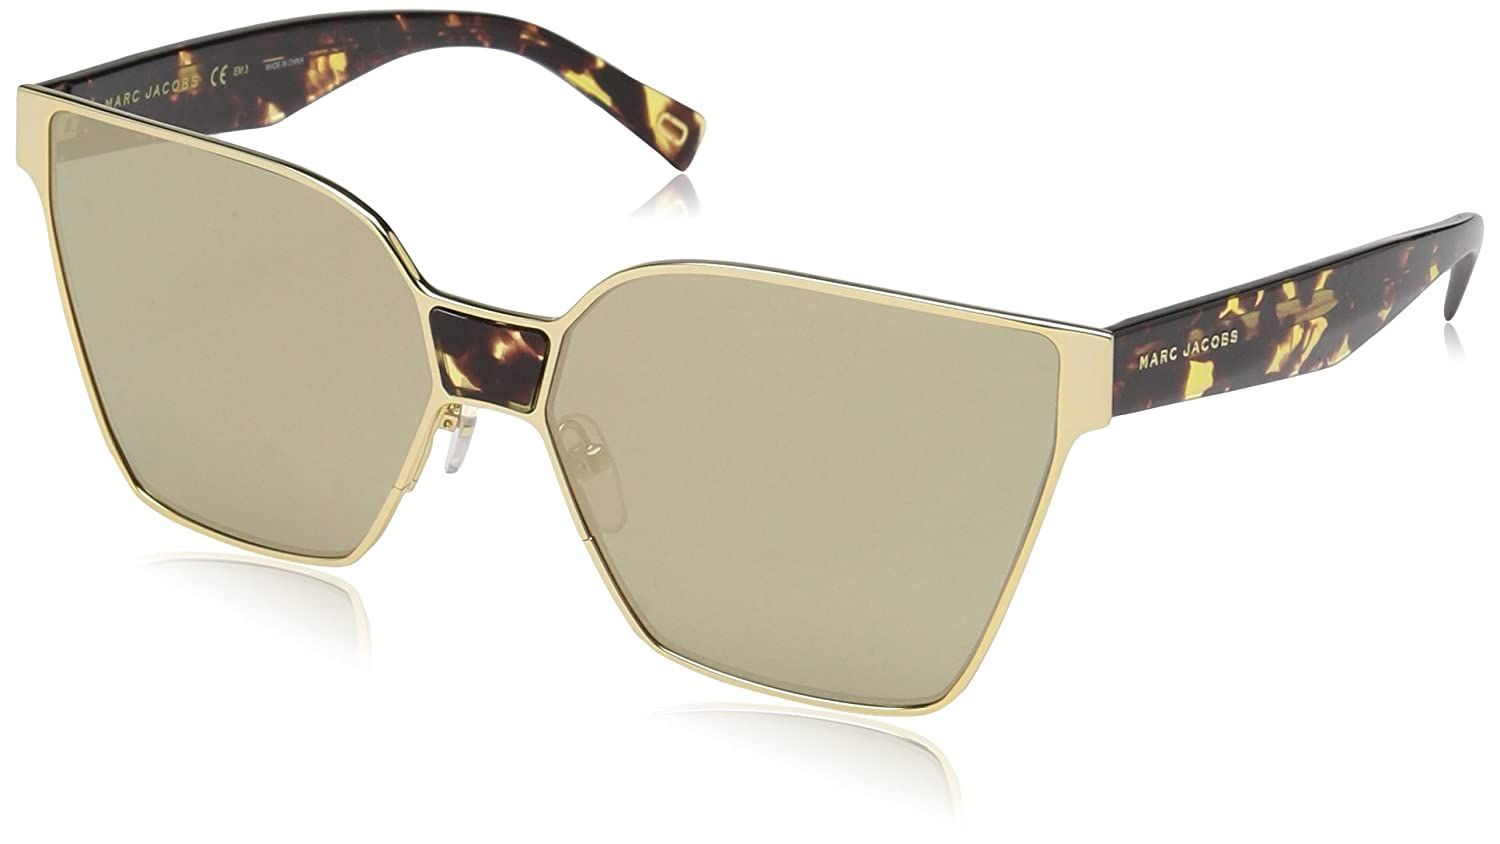 85c61d57bae Amazon.com  Marc Jacobs Women s Marc212s Rectangular Sunglasses GOLD 60 mm   Clothing